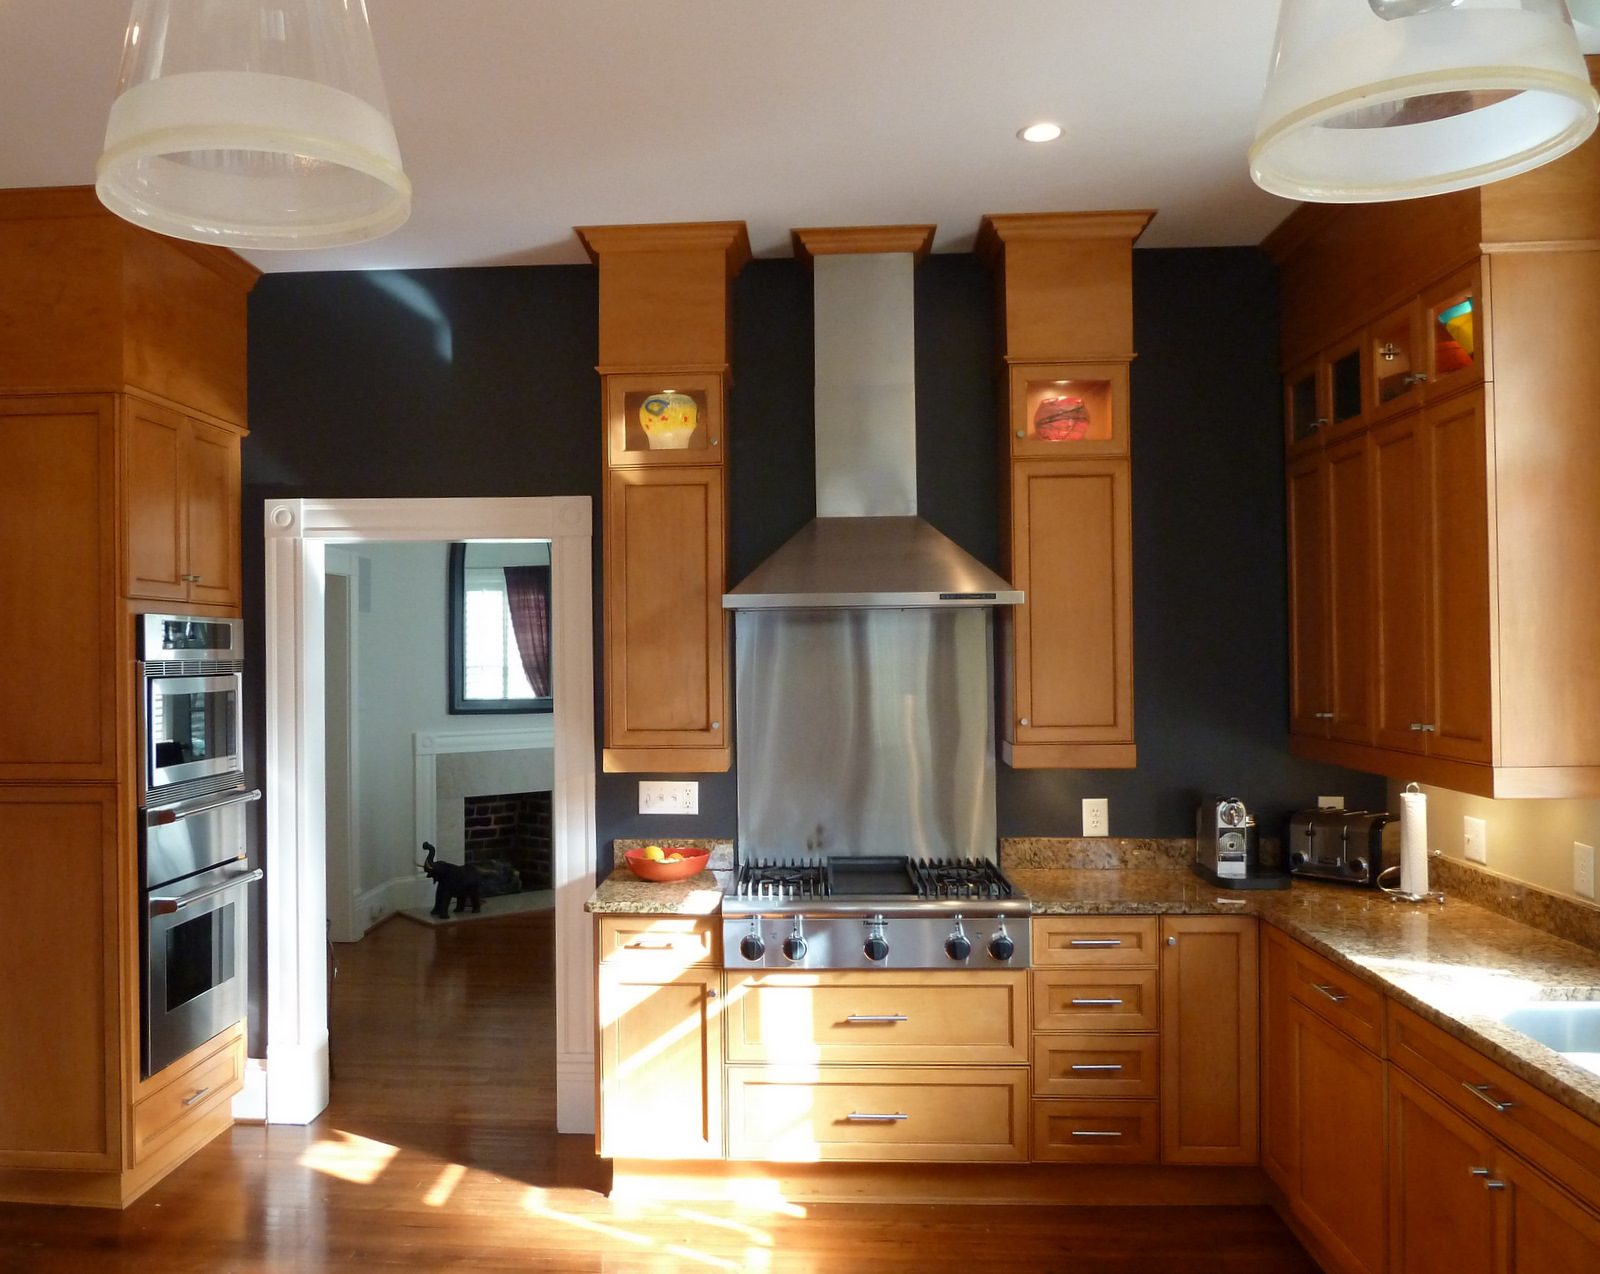 black kitchen cabinets and wall color photo - 1